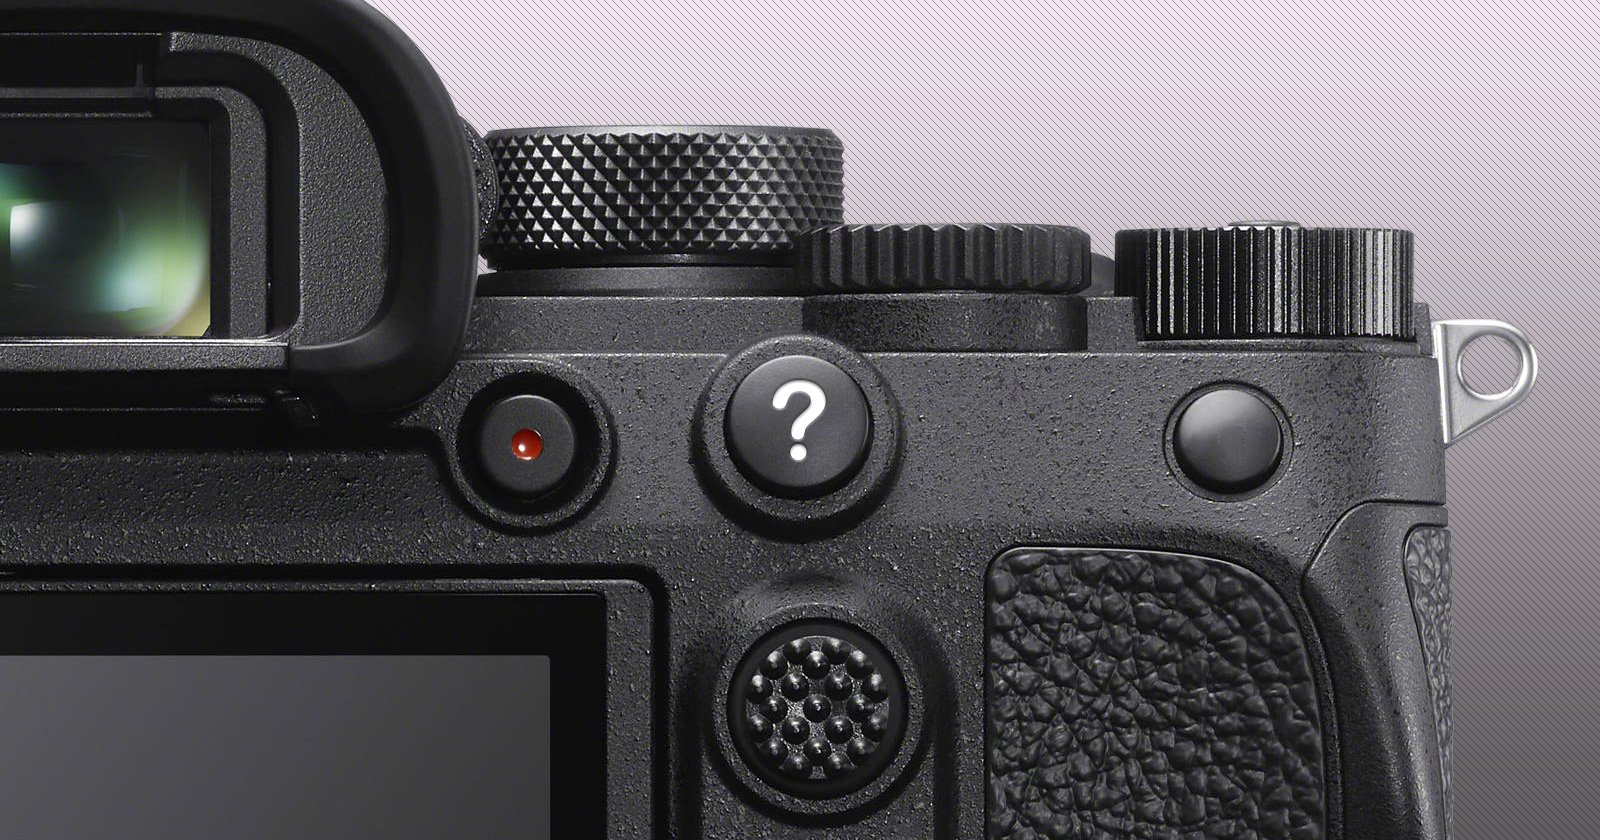 HHD DSLR Filmaking - cover